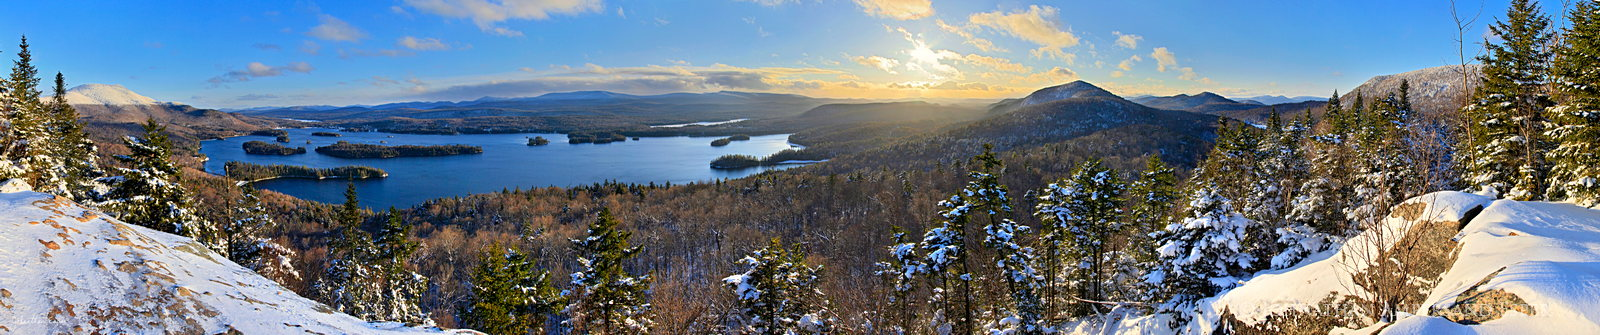 Blue Mountain Lake,Blue Mountain,Castle Rock,winter,panorama,December,Adirondack Park,Adirondacks,Johnathan Esper, photo